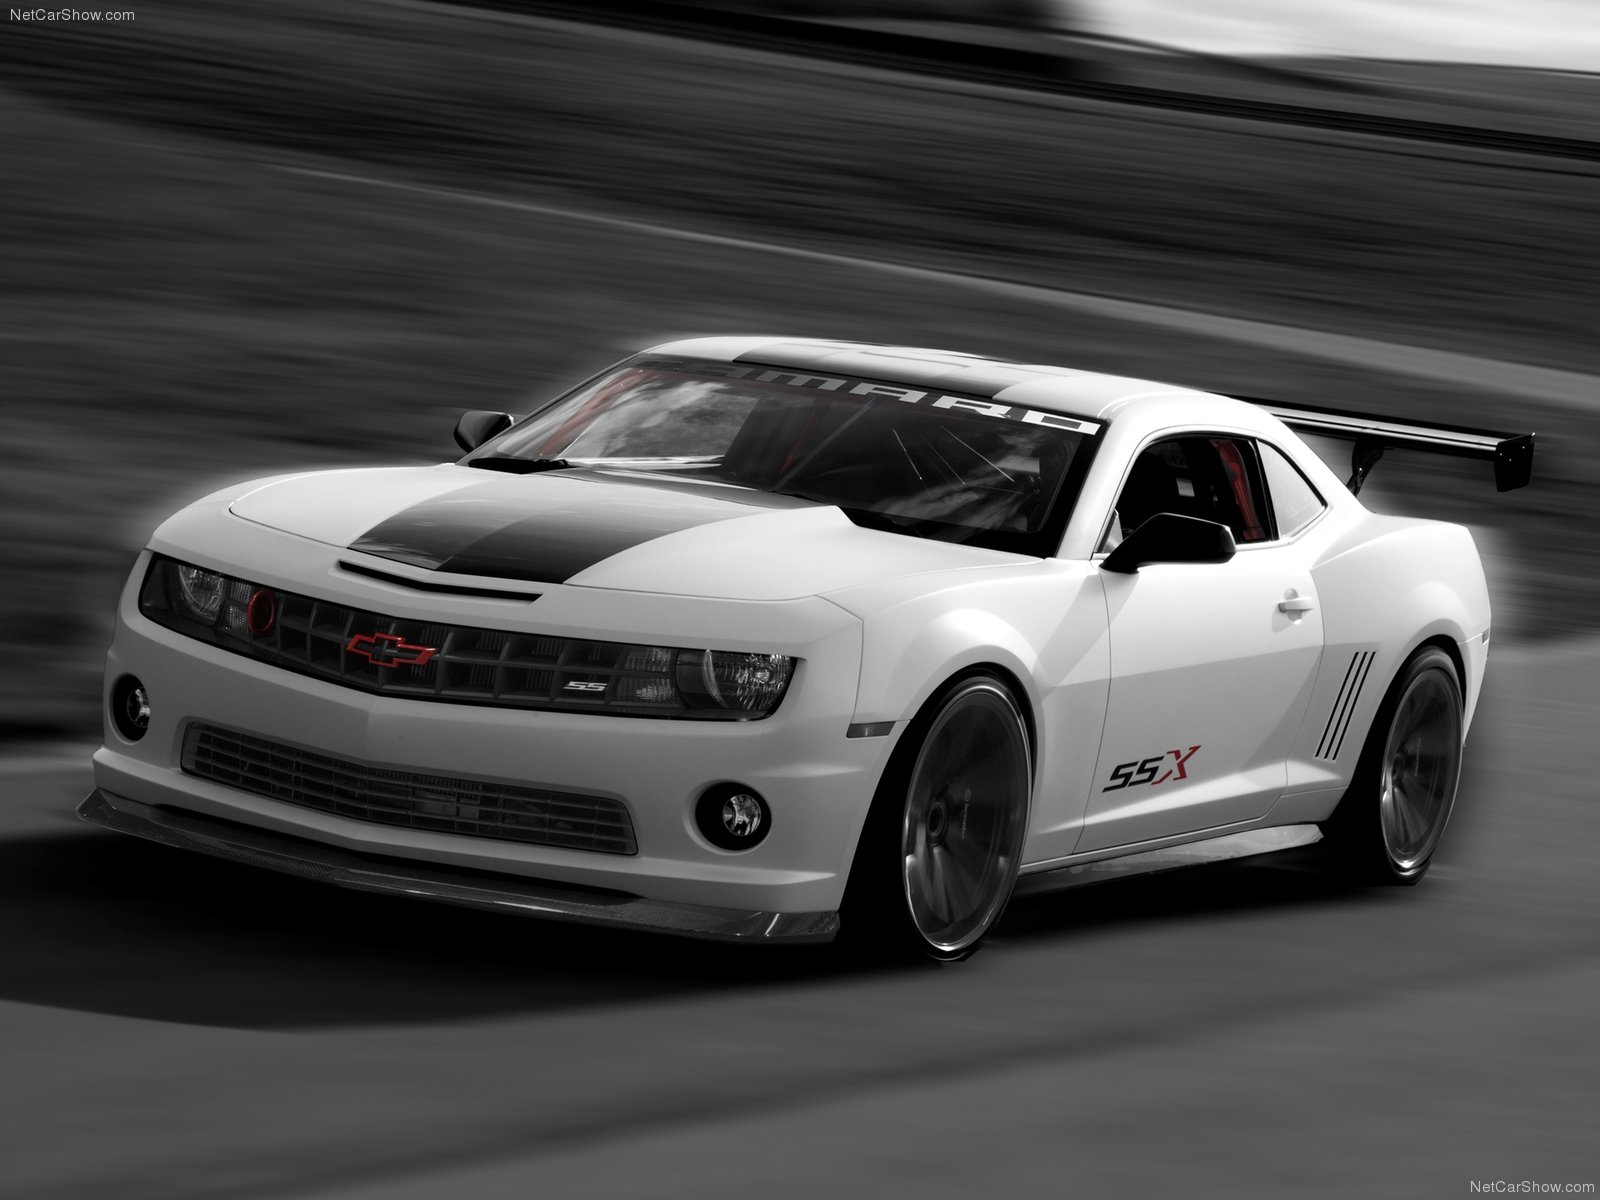 Chevrolet Camaro SSX photo 76593